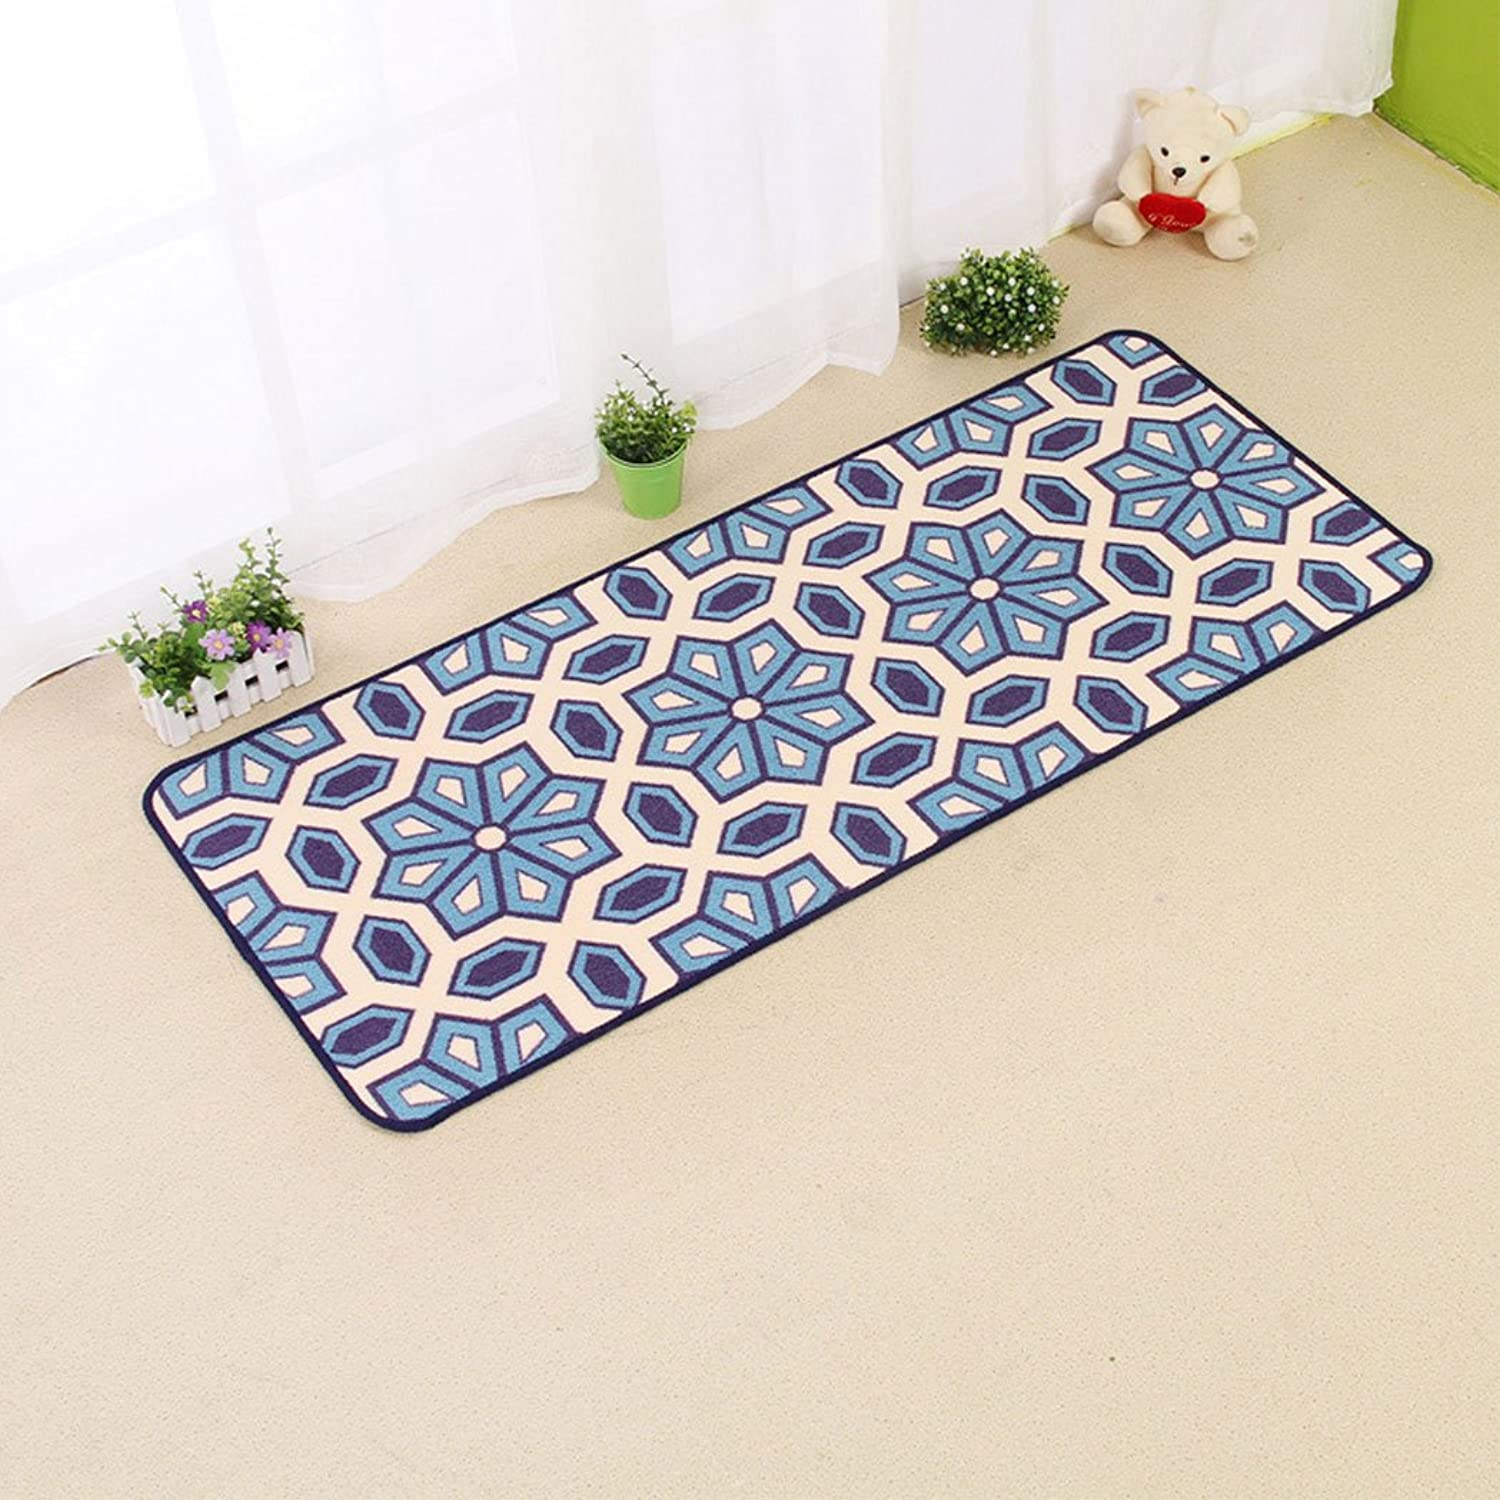 SUN-Shine Durable Home and Kitchen Rug Runners with Non-Slip Rubber Backing Indoor Doormats Floor Mat Carpet, Modern Geometric Floral